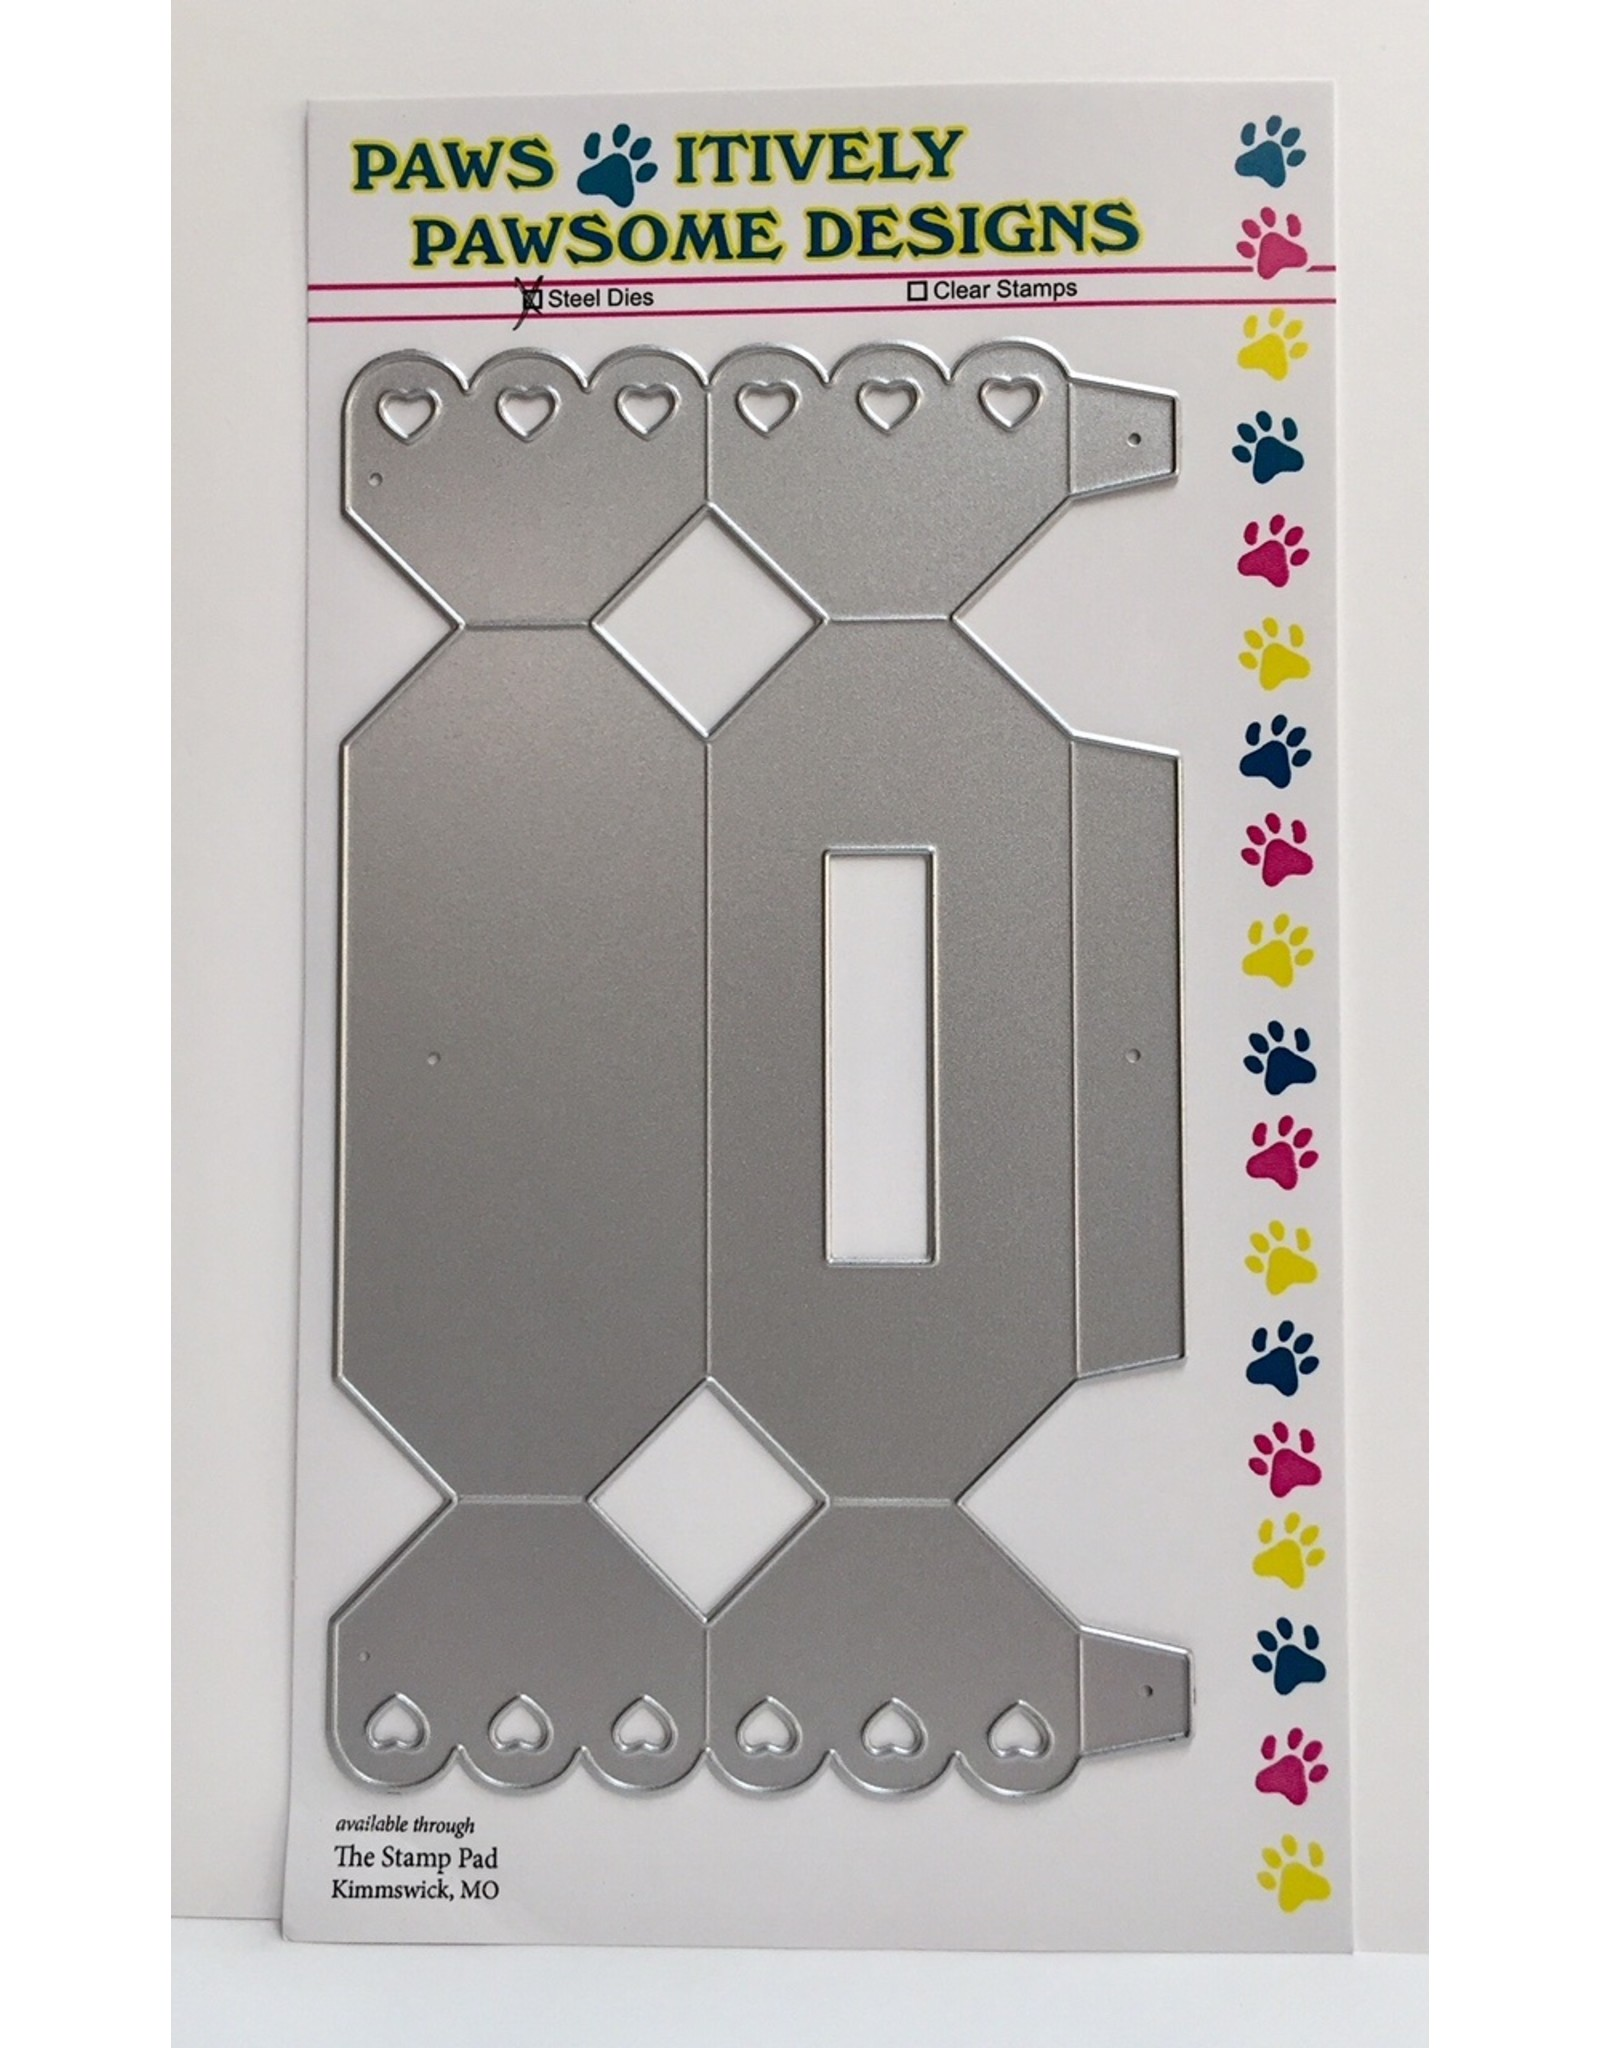 Paws-Itively Pawsome Designs Scalloped Candy Roll 3-D Box - Die